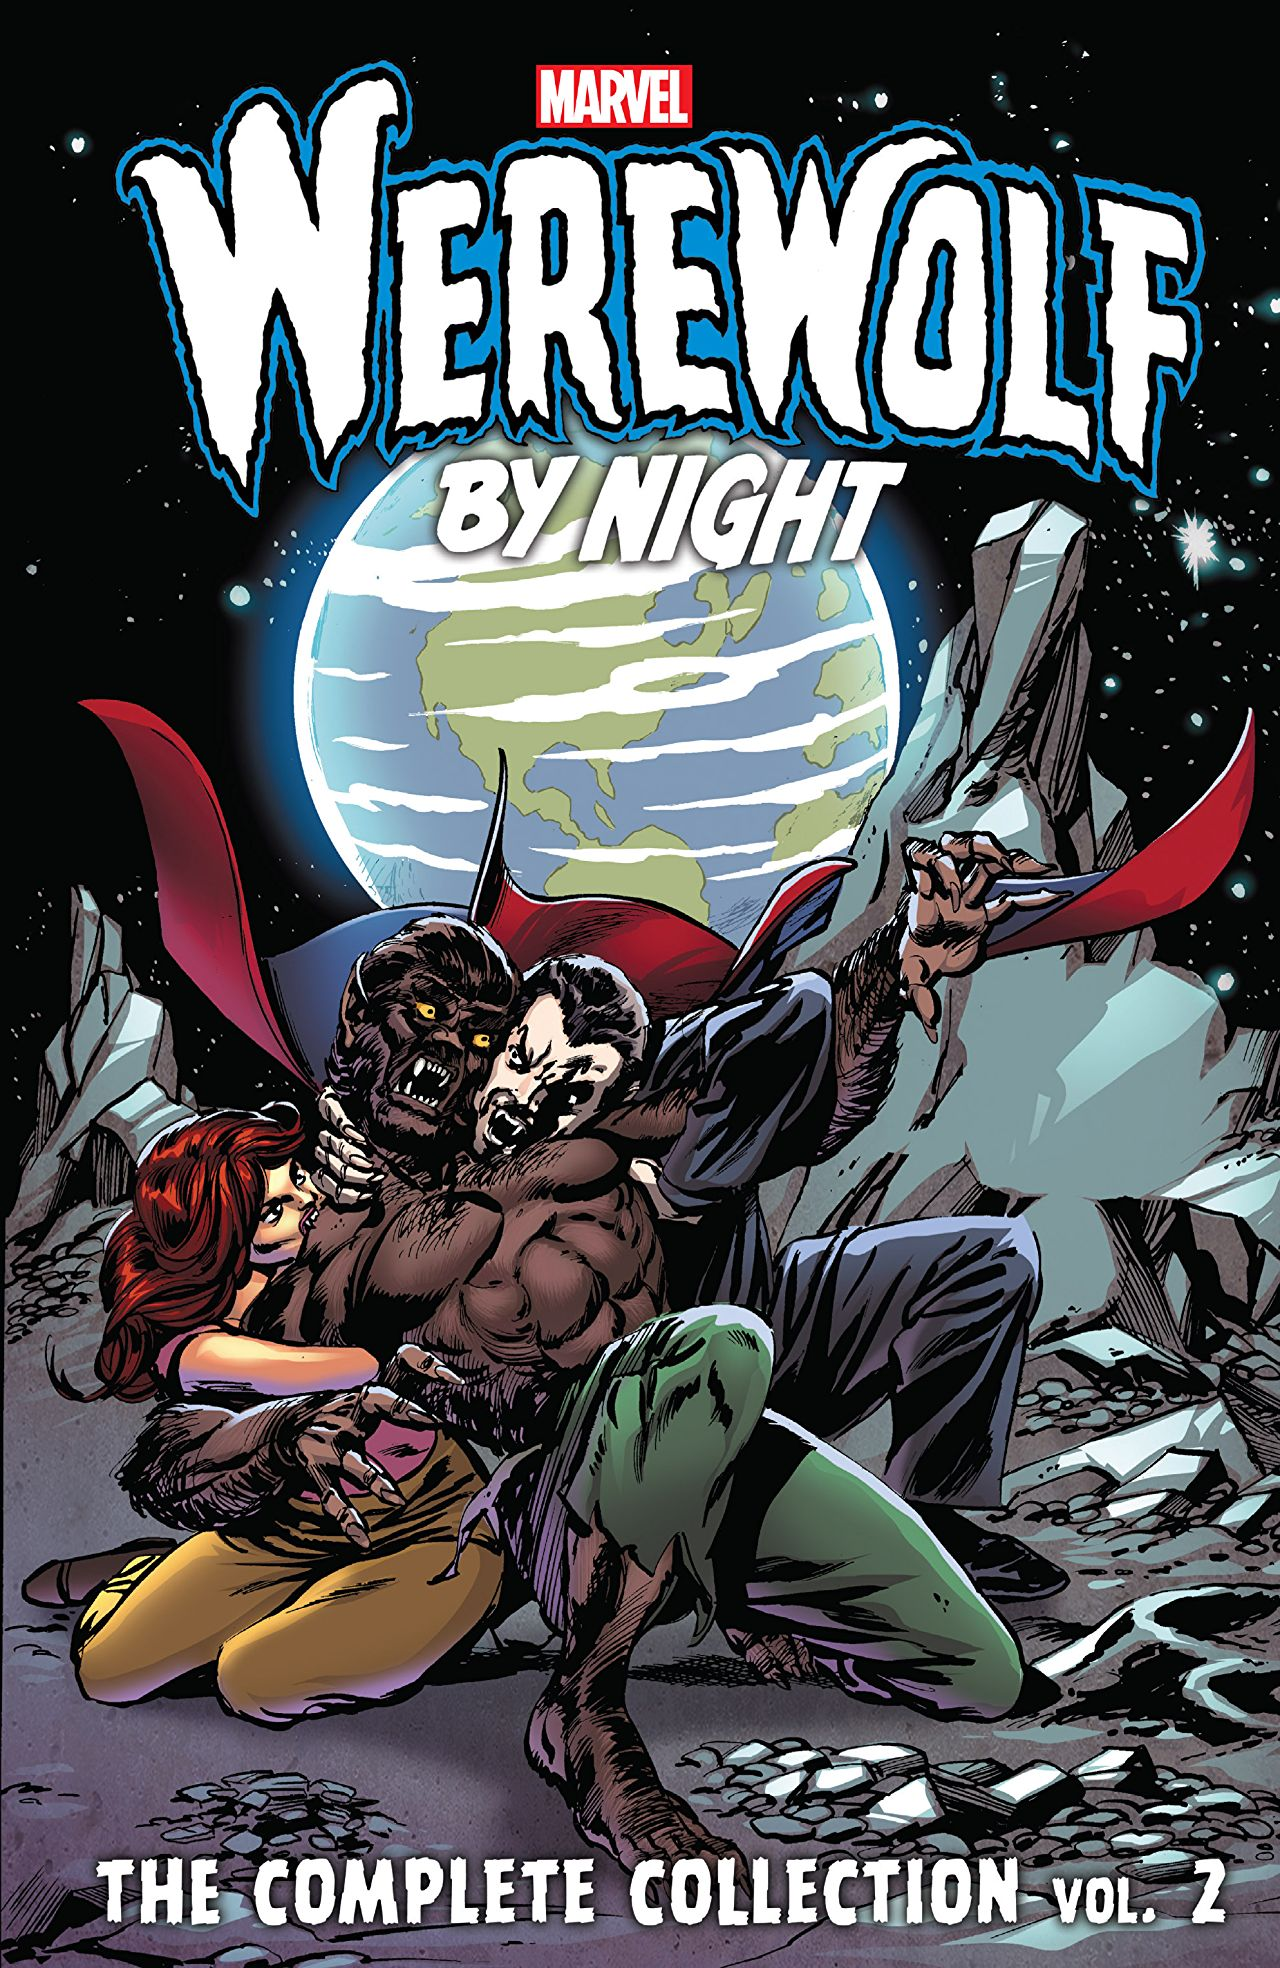 'Werewolf by Night: The Complete Collection' Vol. 2 is a howling good time